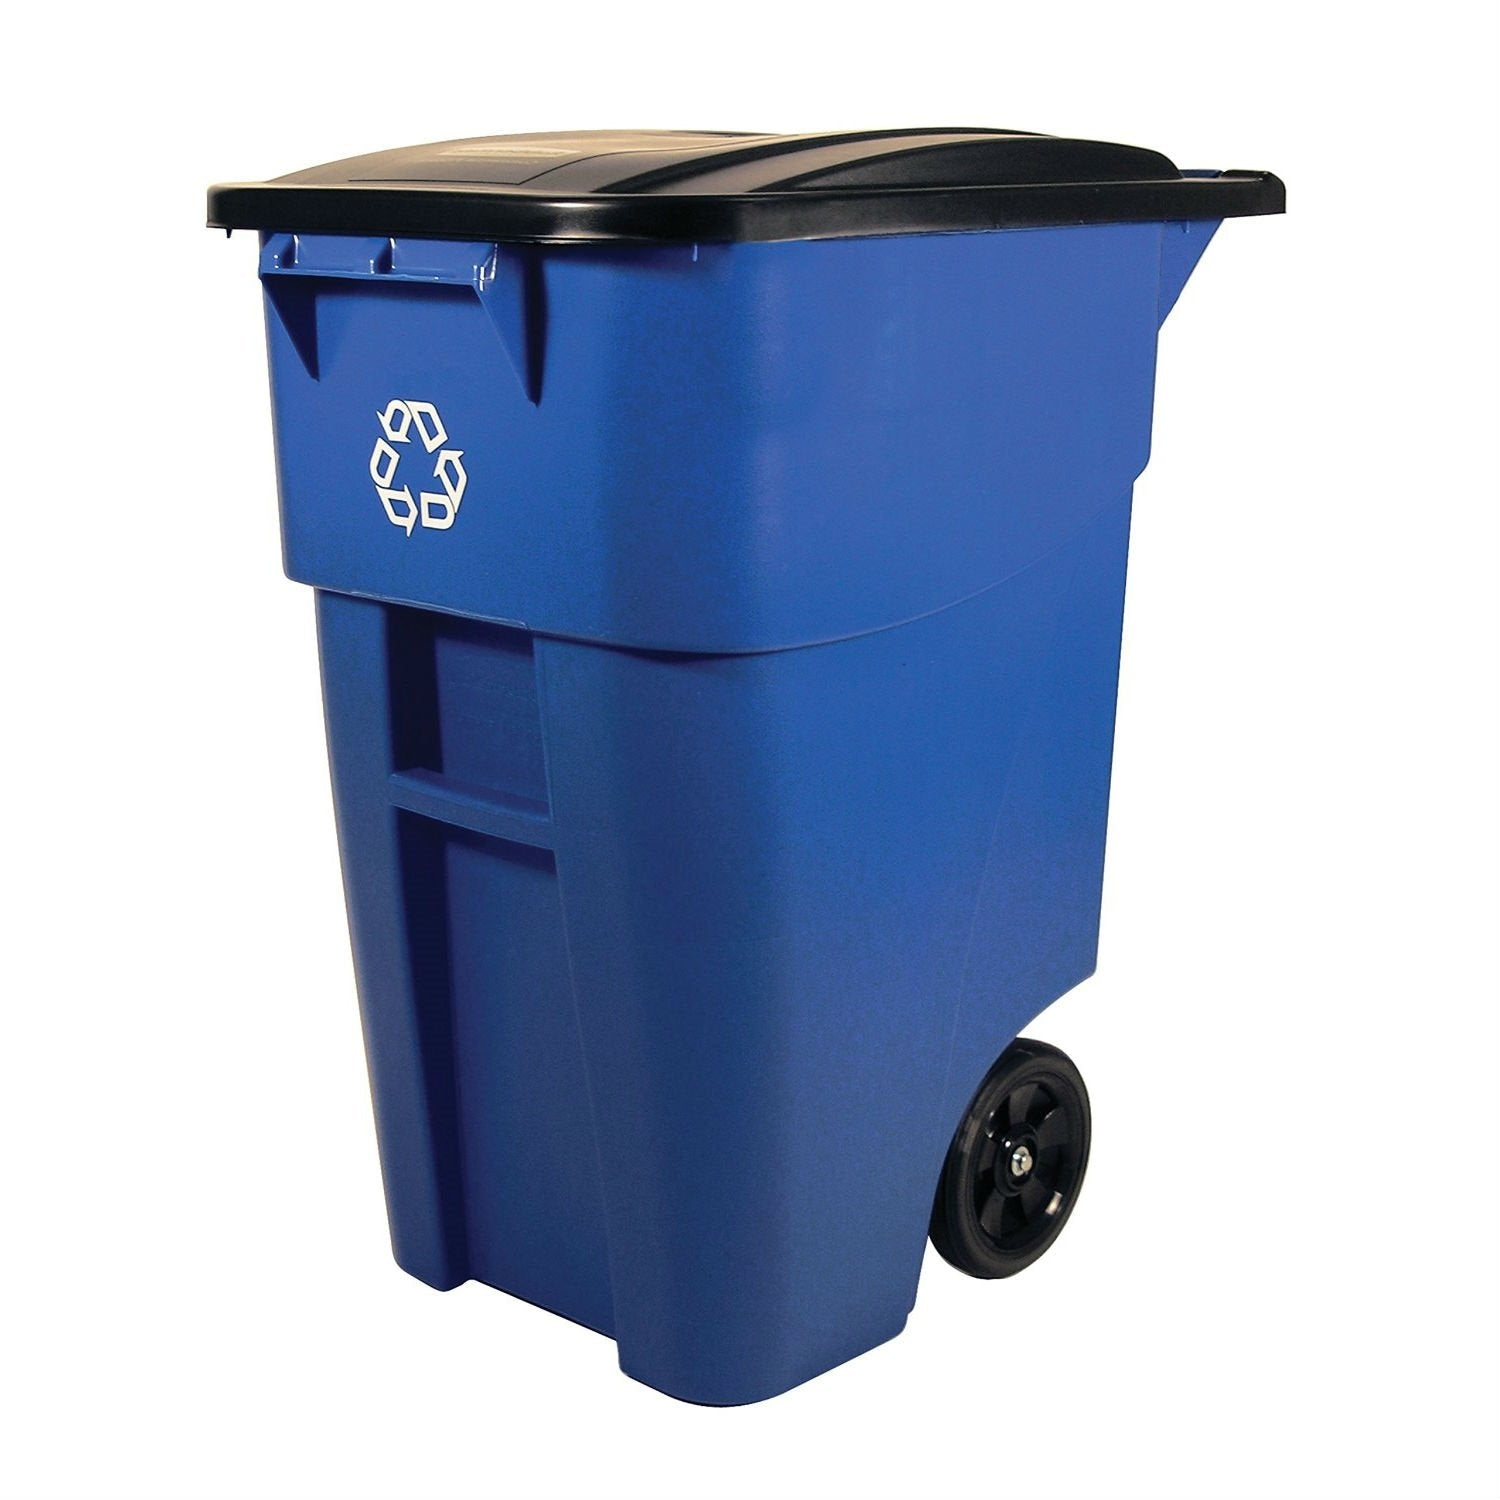 50 Gallon Blue Commercial Heavy-Duty Rollout Recycler Trash Can Container